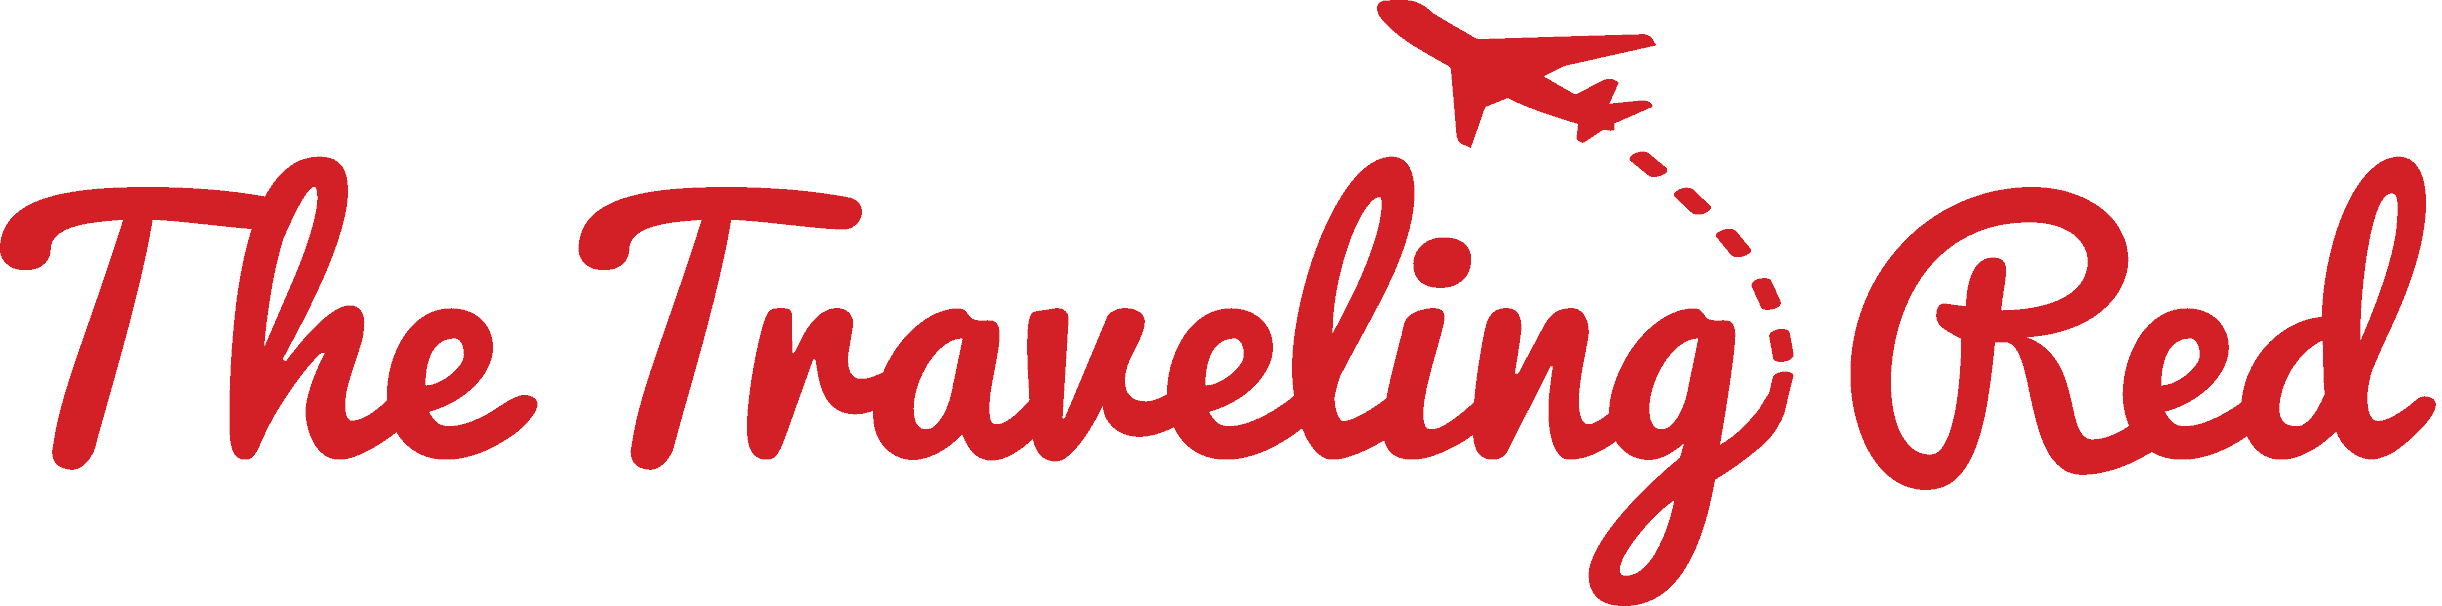 The Traveling Red